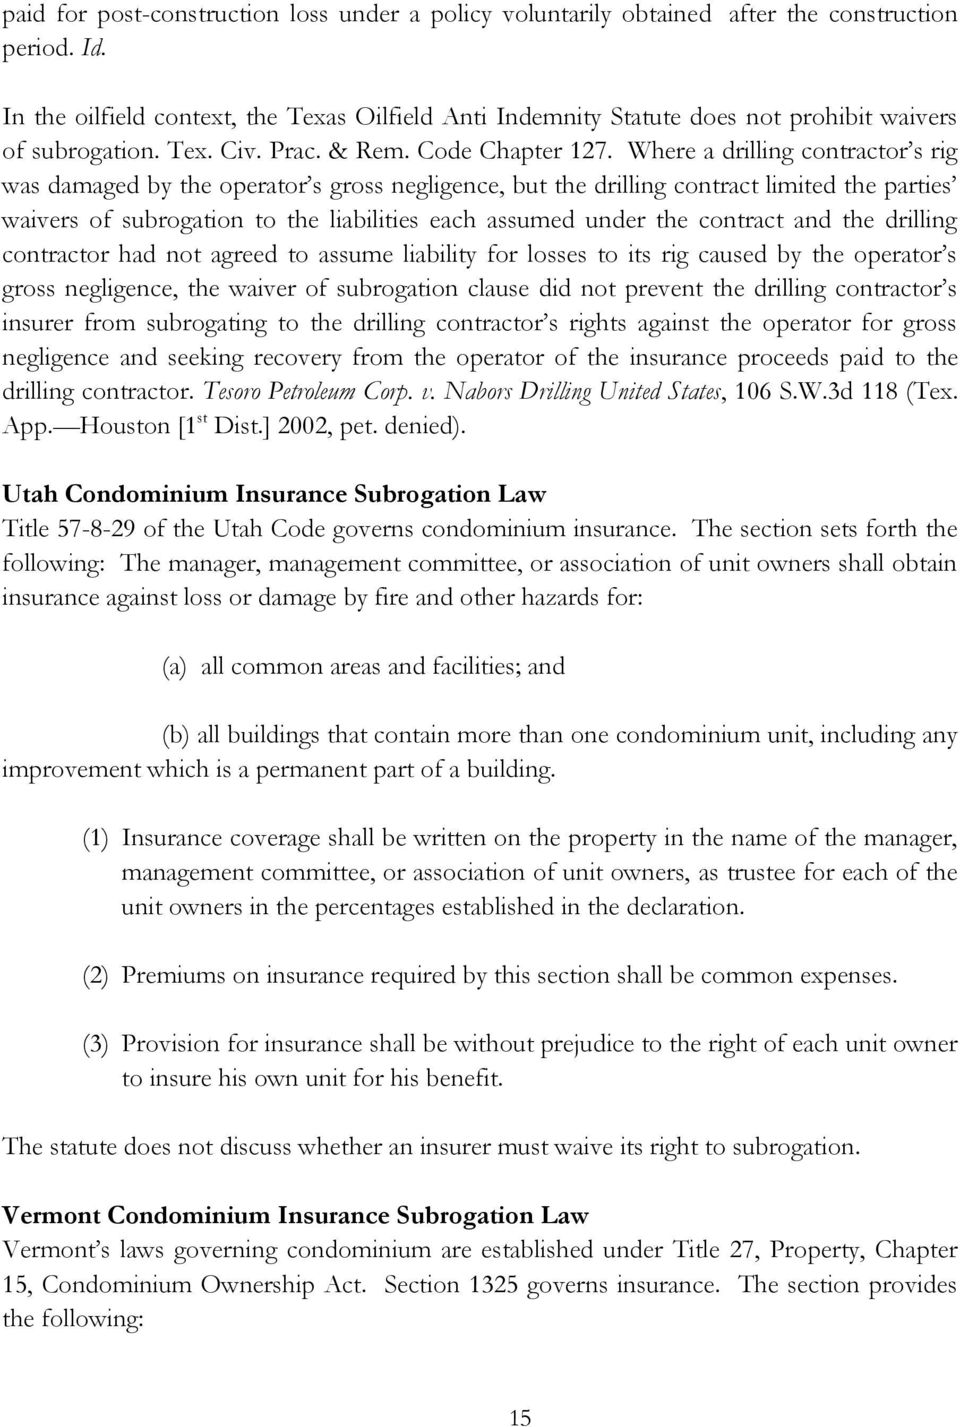 State By State Compendium On Waivers Of Subrogation On Condominium